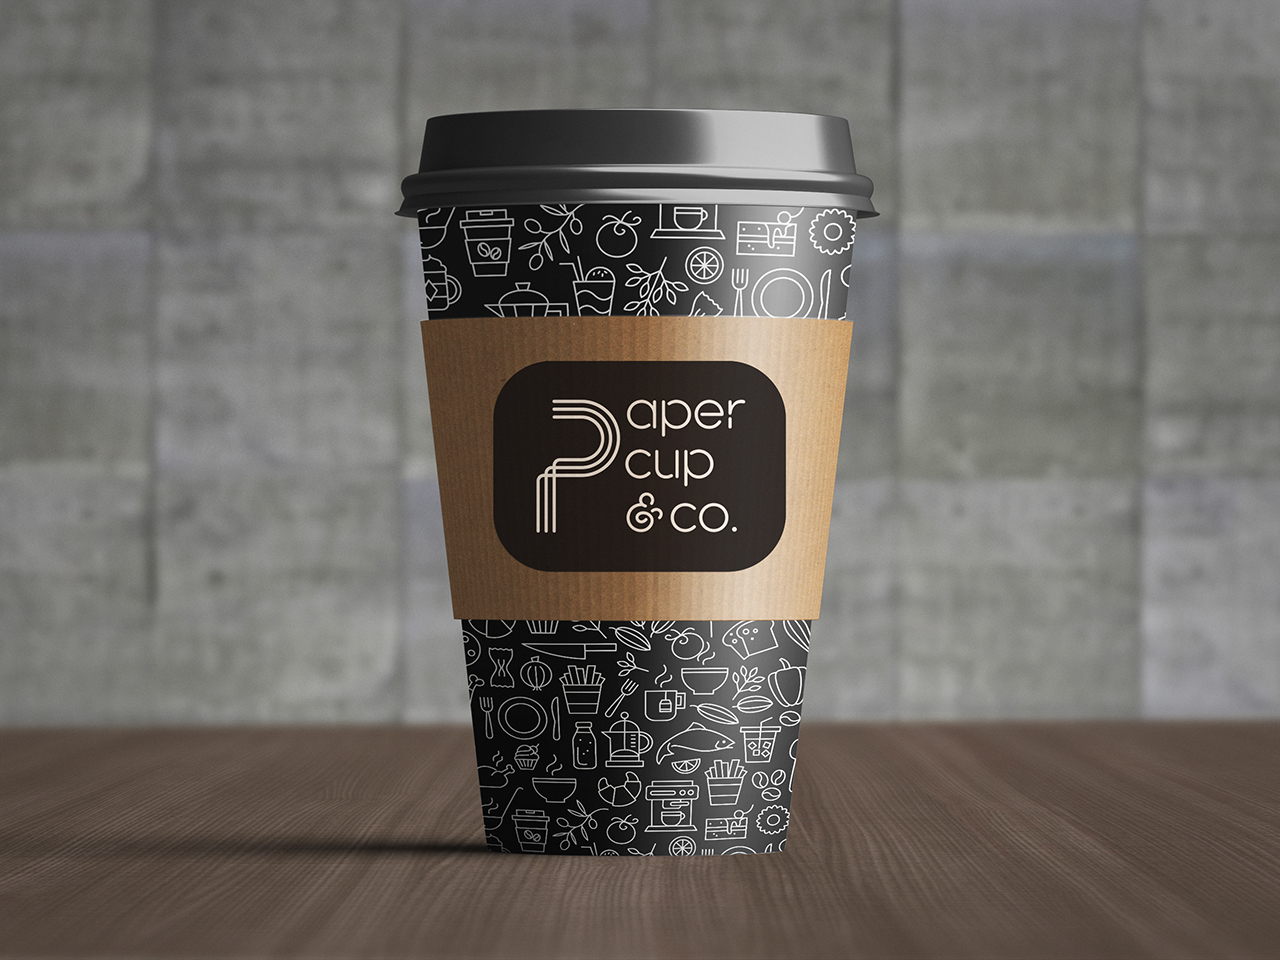 PAPER CUP & CO. - Identity creation, brand development, logo design, menu, packaging and signage design